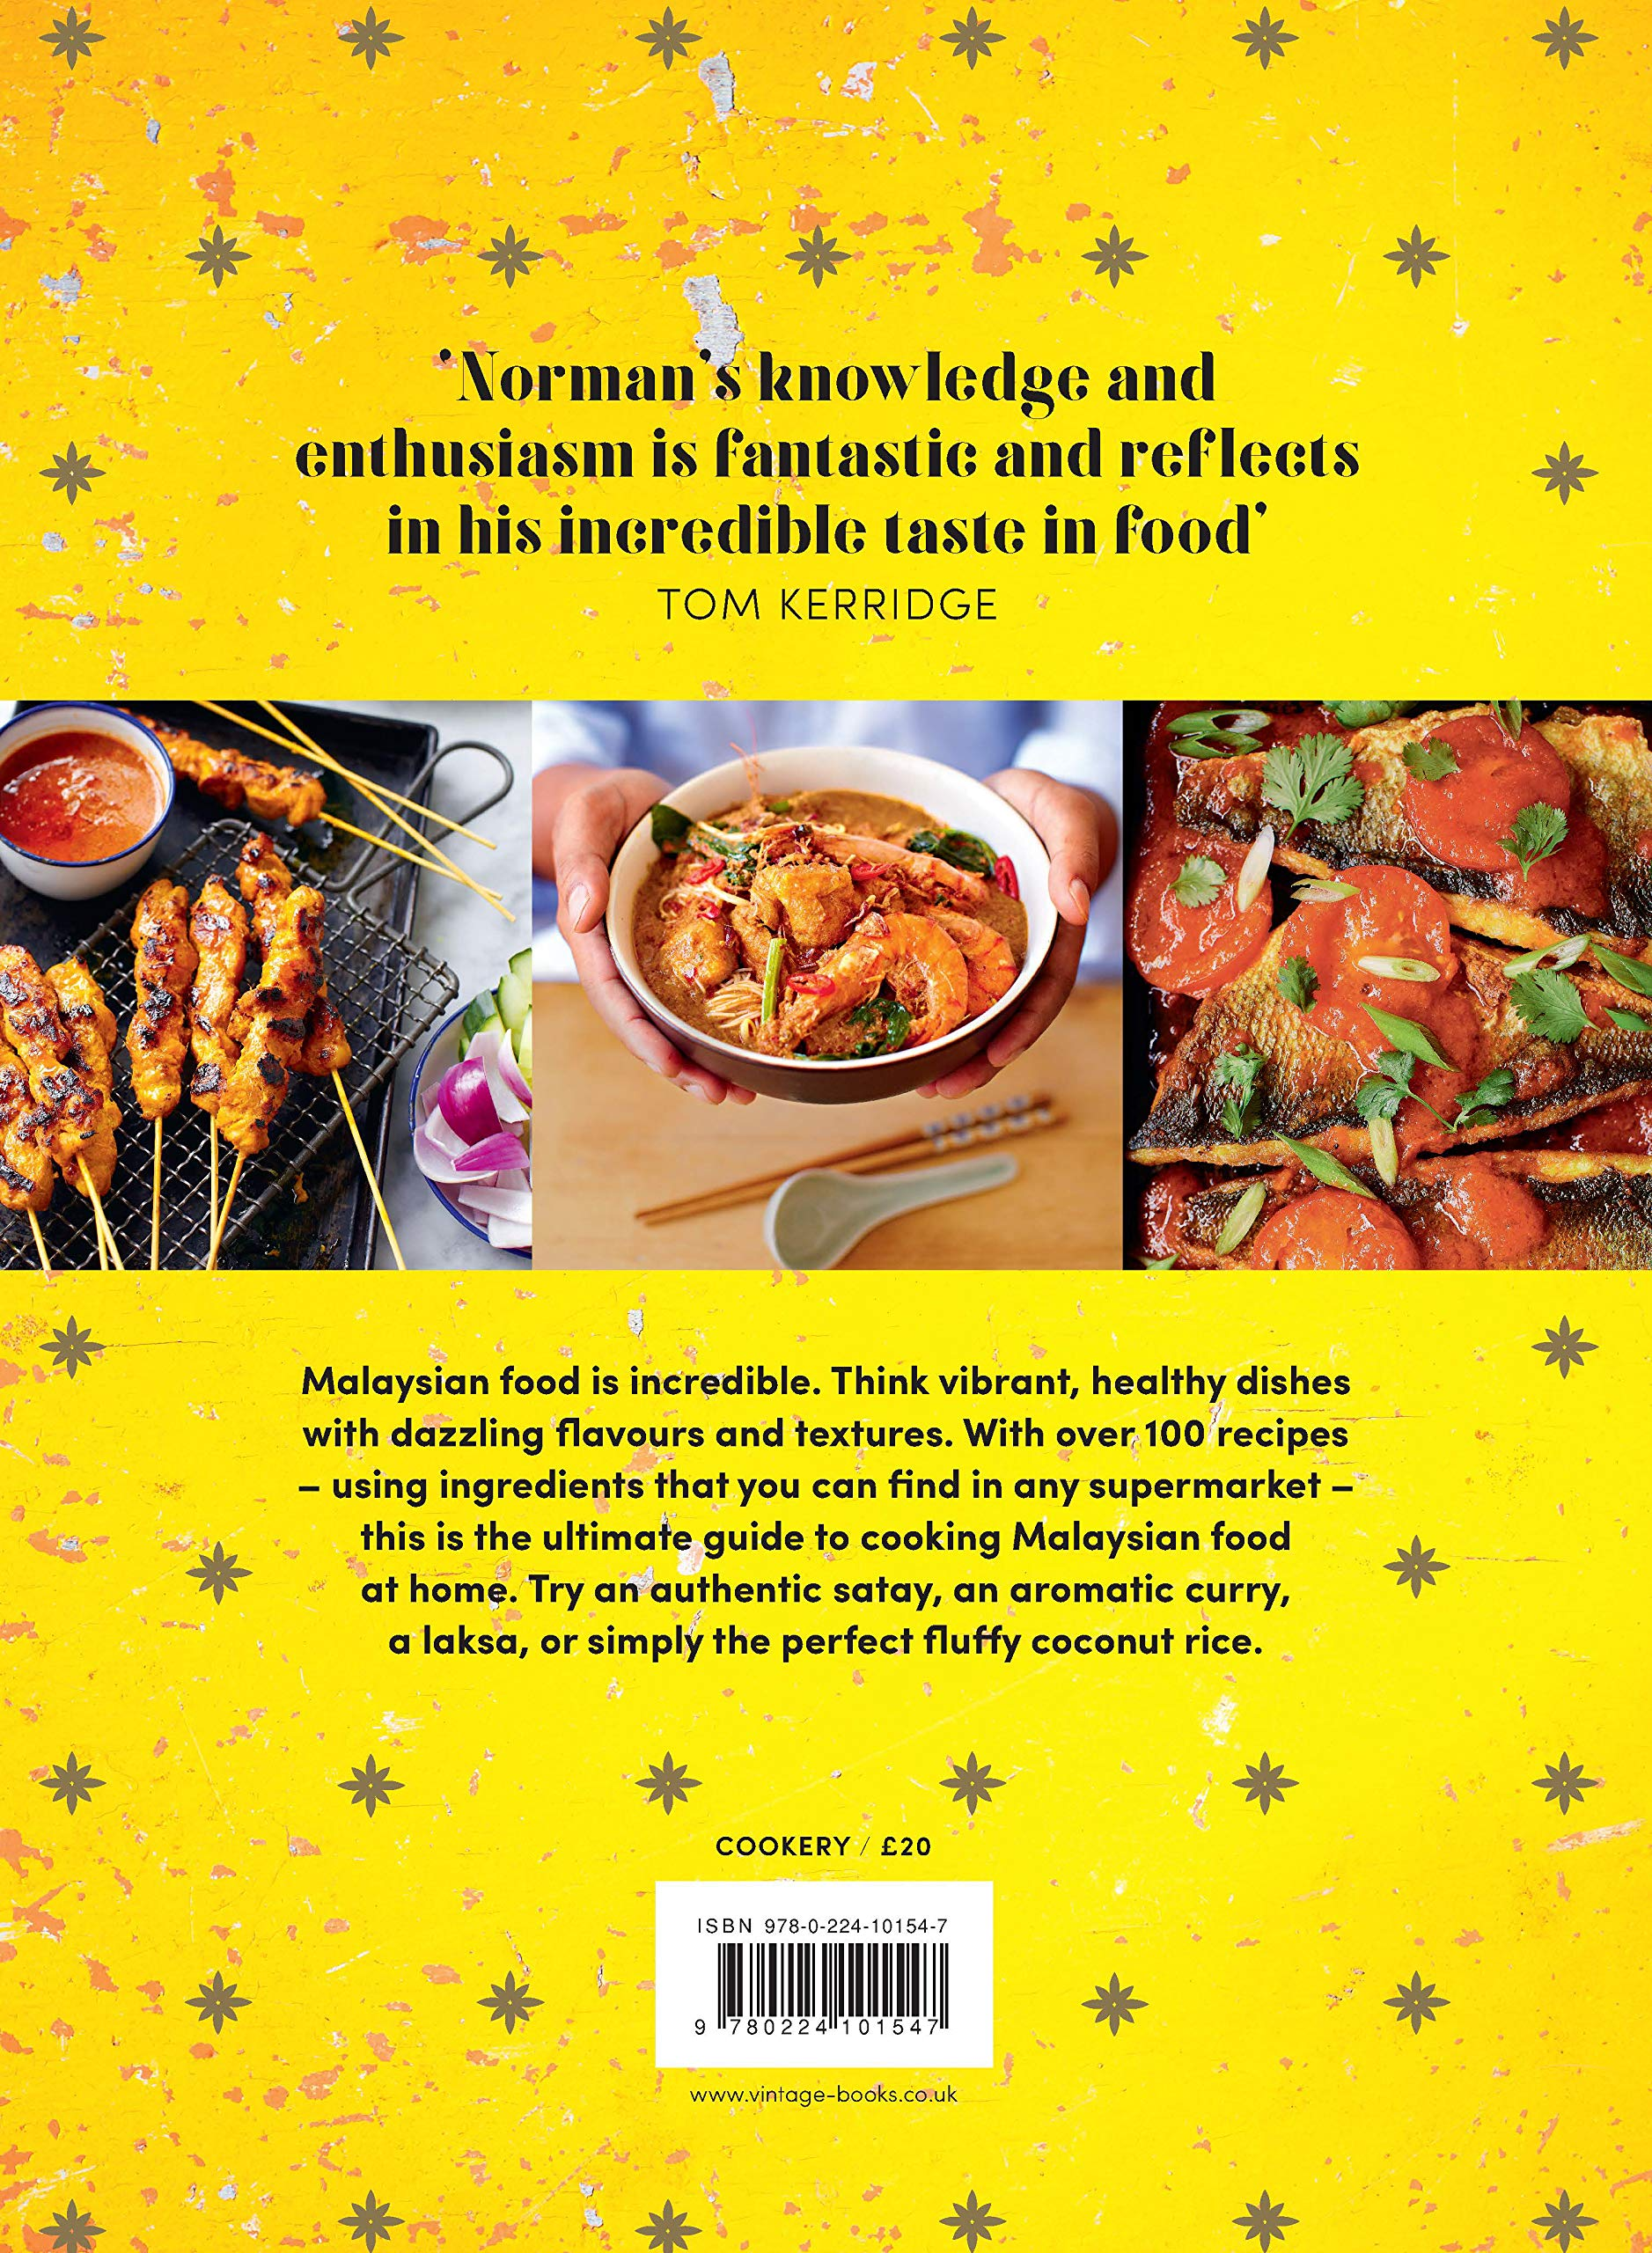 Amazing malaysian recipes for vibrant malaysian home cooking amazing malaysian recipes for vibrant malaysian home cooking amazon norman musa 9780224101547 books forumfinder Images